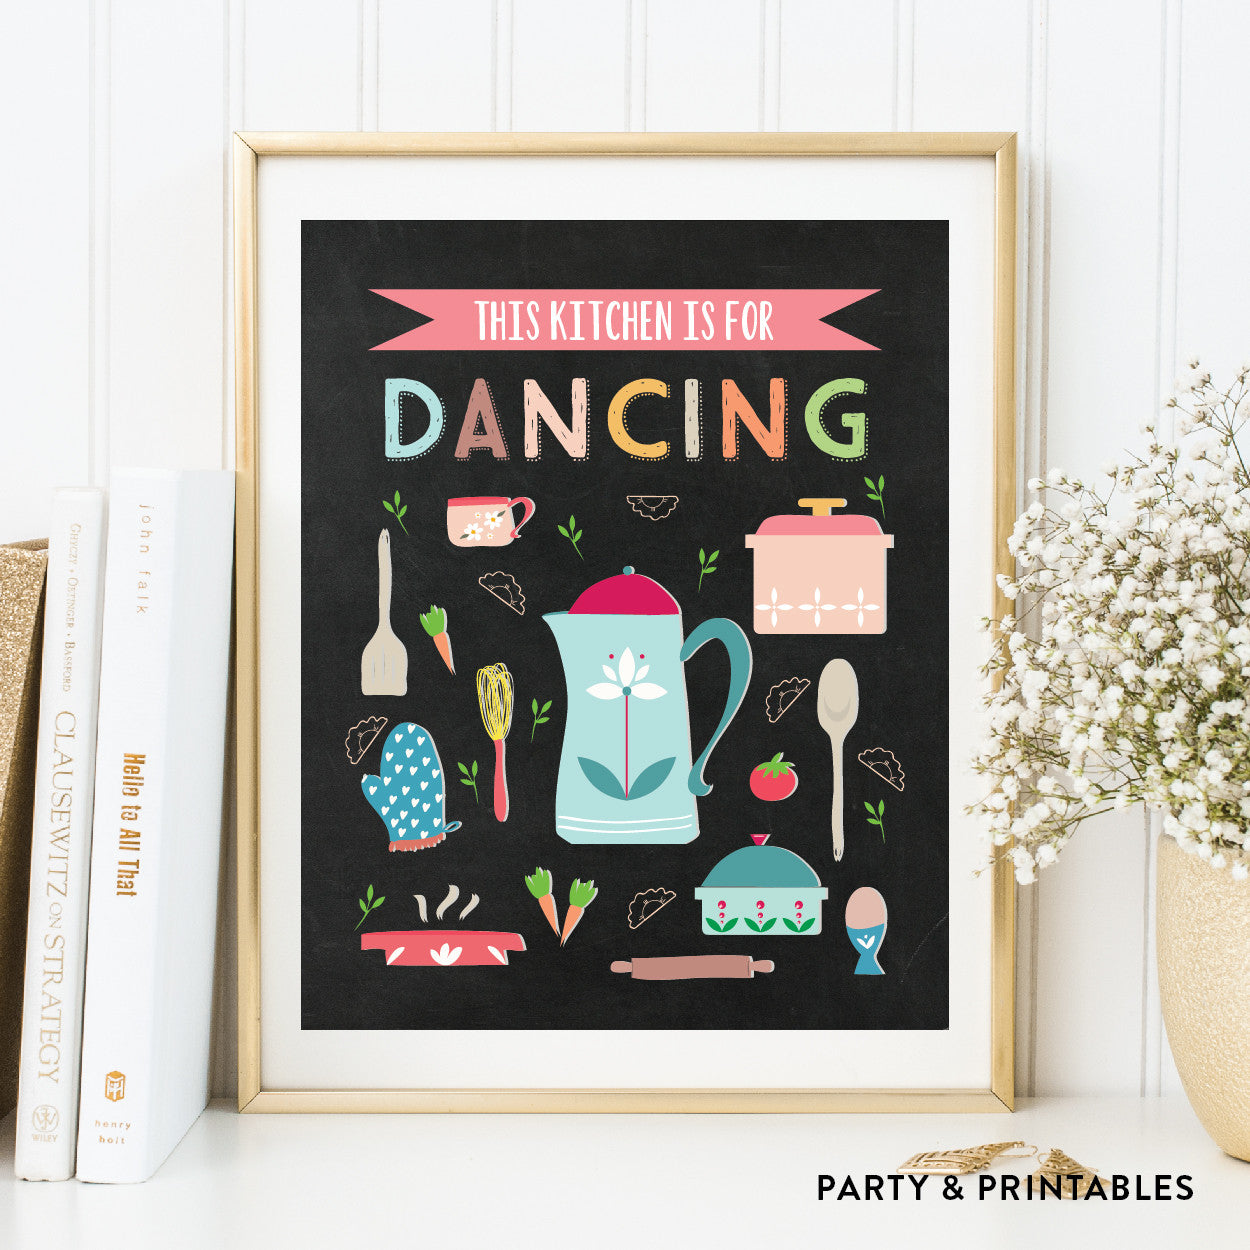 This Kitchen Is For Dancing Wall Art / Instant Download (WA.16), photo booth props - Party and Printables